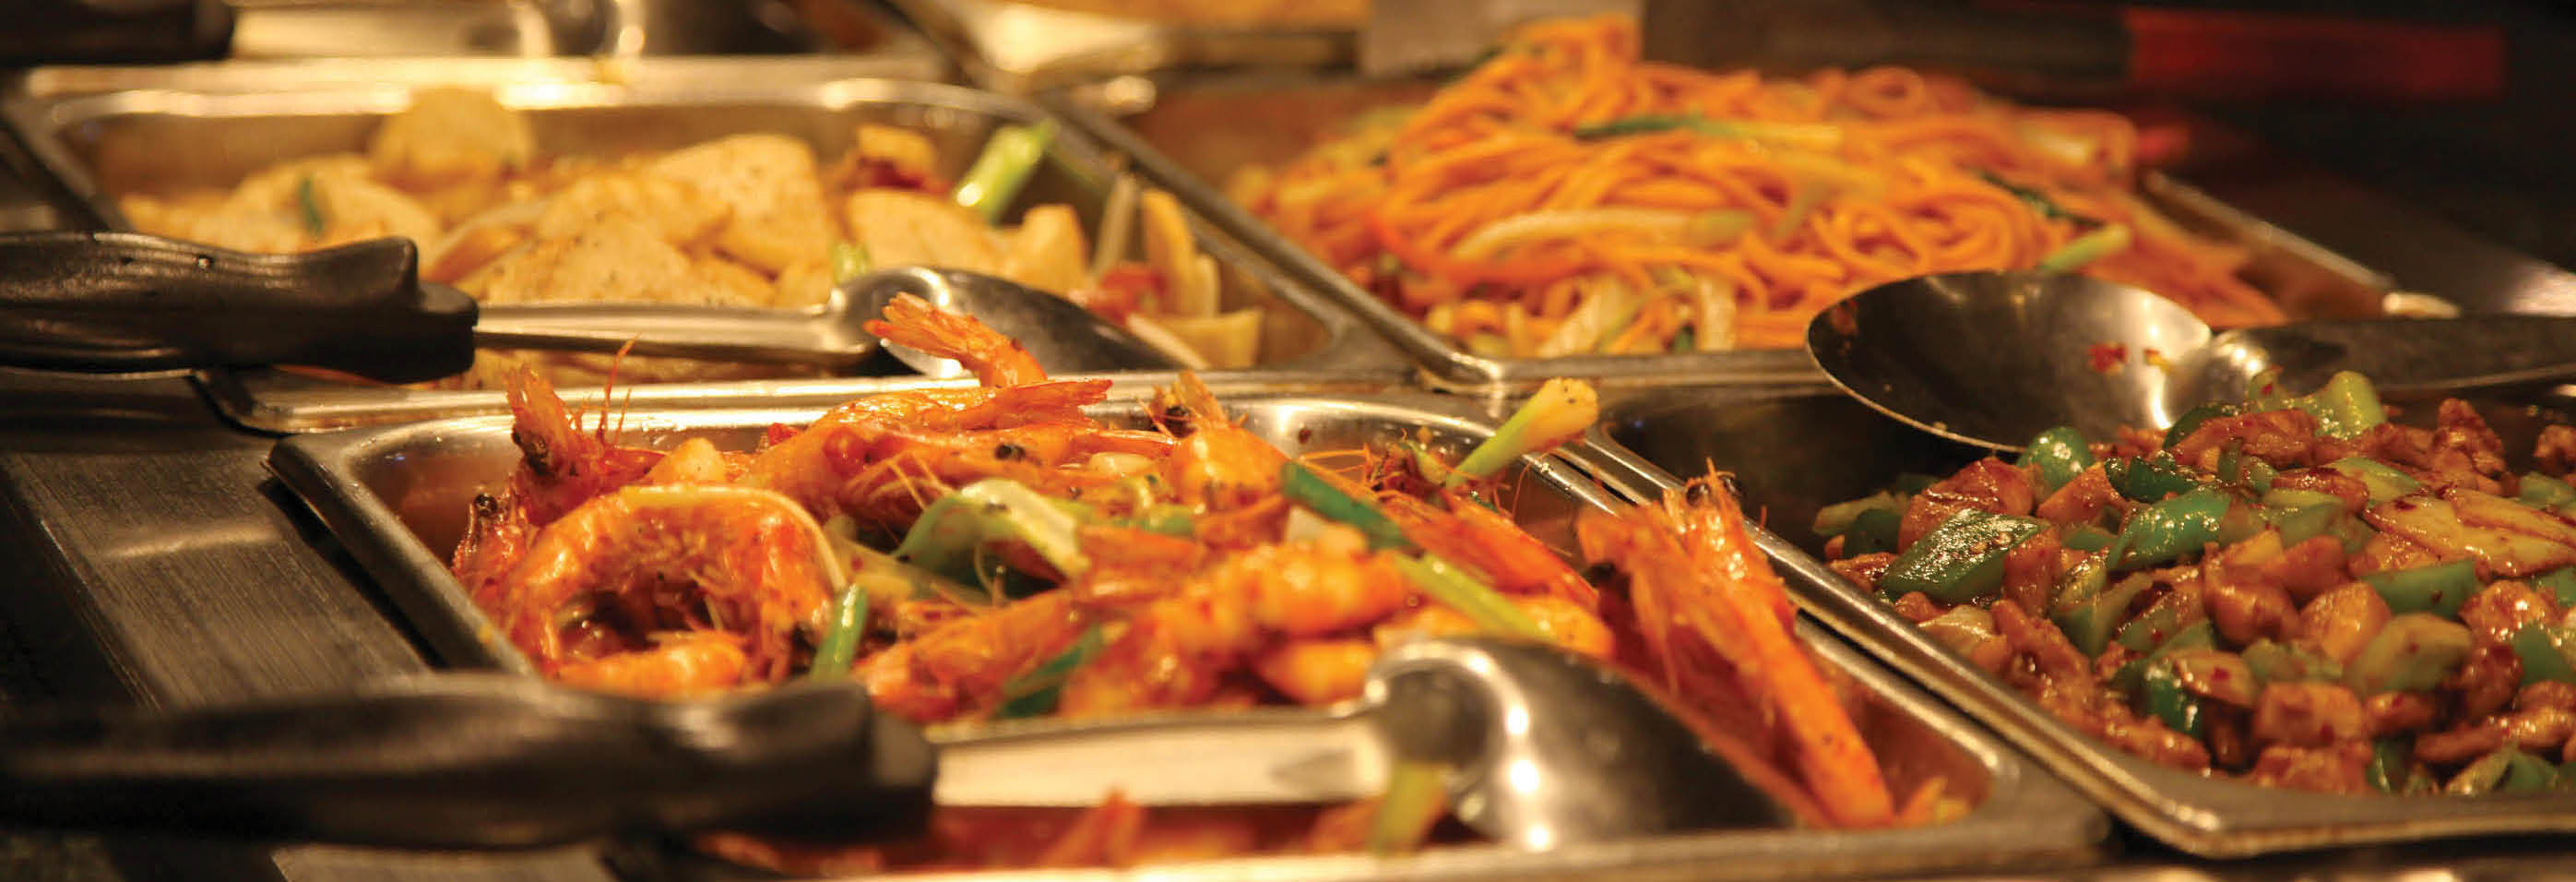 four season asian buffet,asian food near me,four seasons,dinner in newark,take out,dine in,